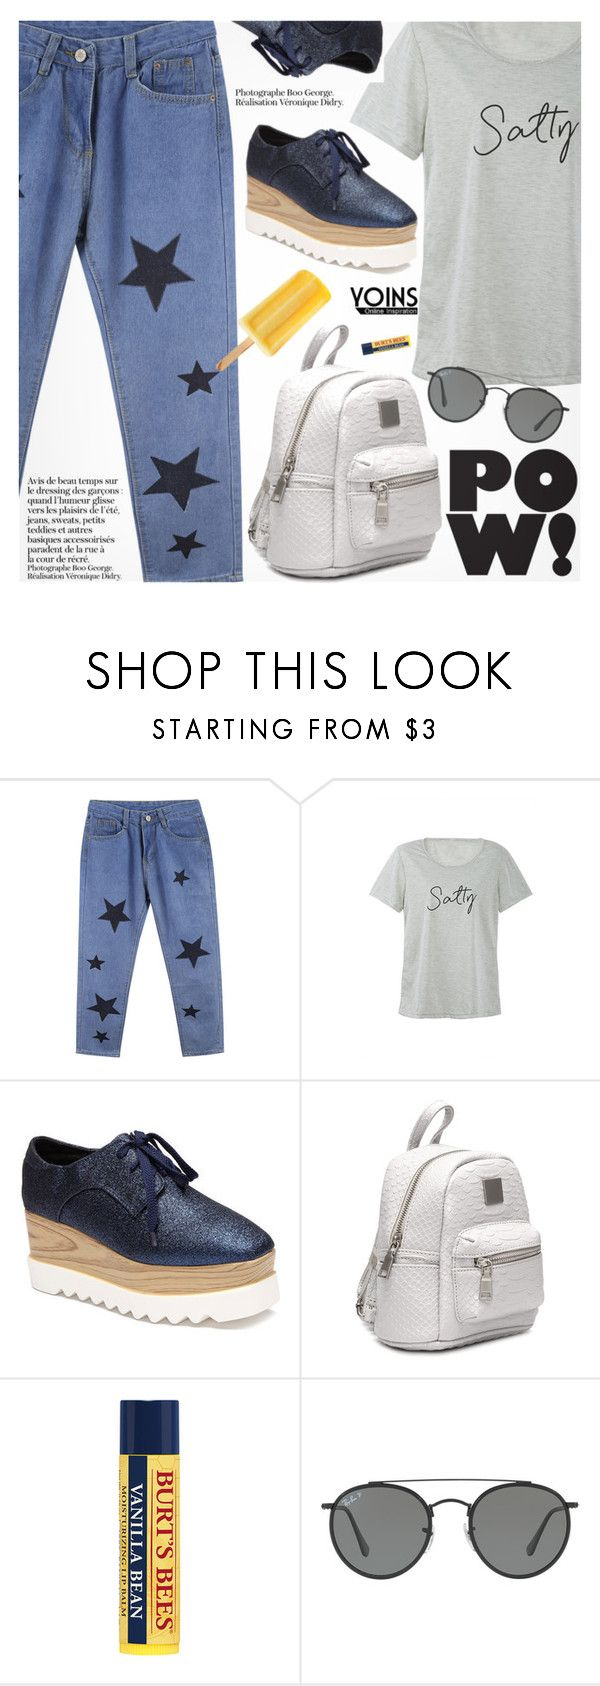 """Yoins 2:School Style"" by pokadoll ❤ liked on Polyvore featuring Ray-Ban, yoins, yoinscollection and loveyoins"